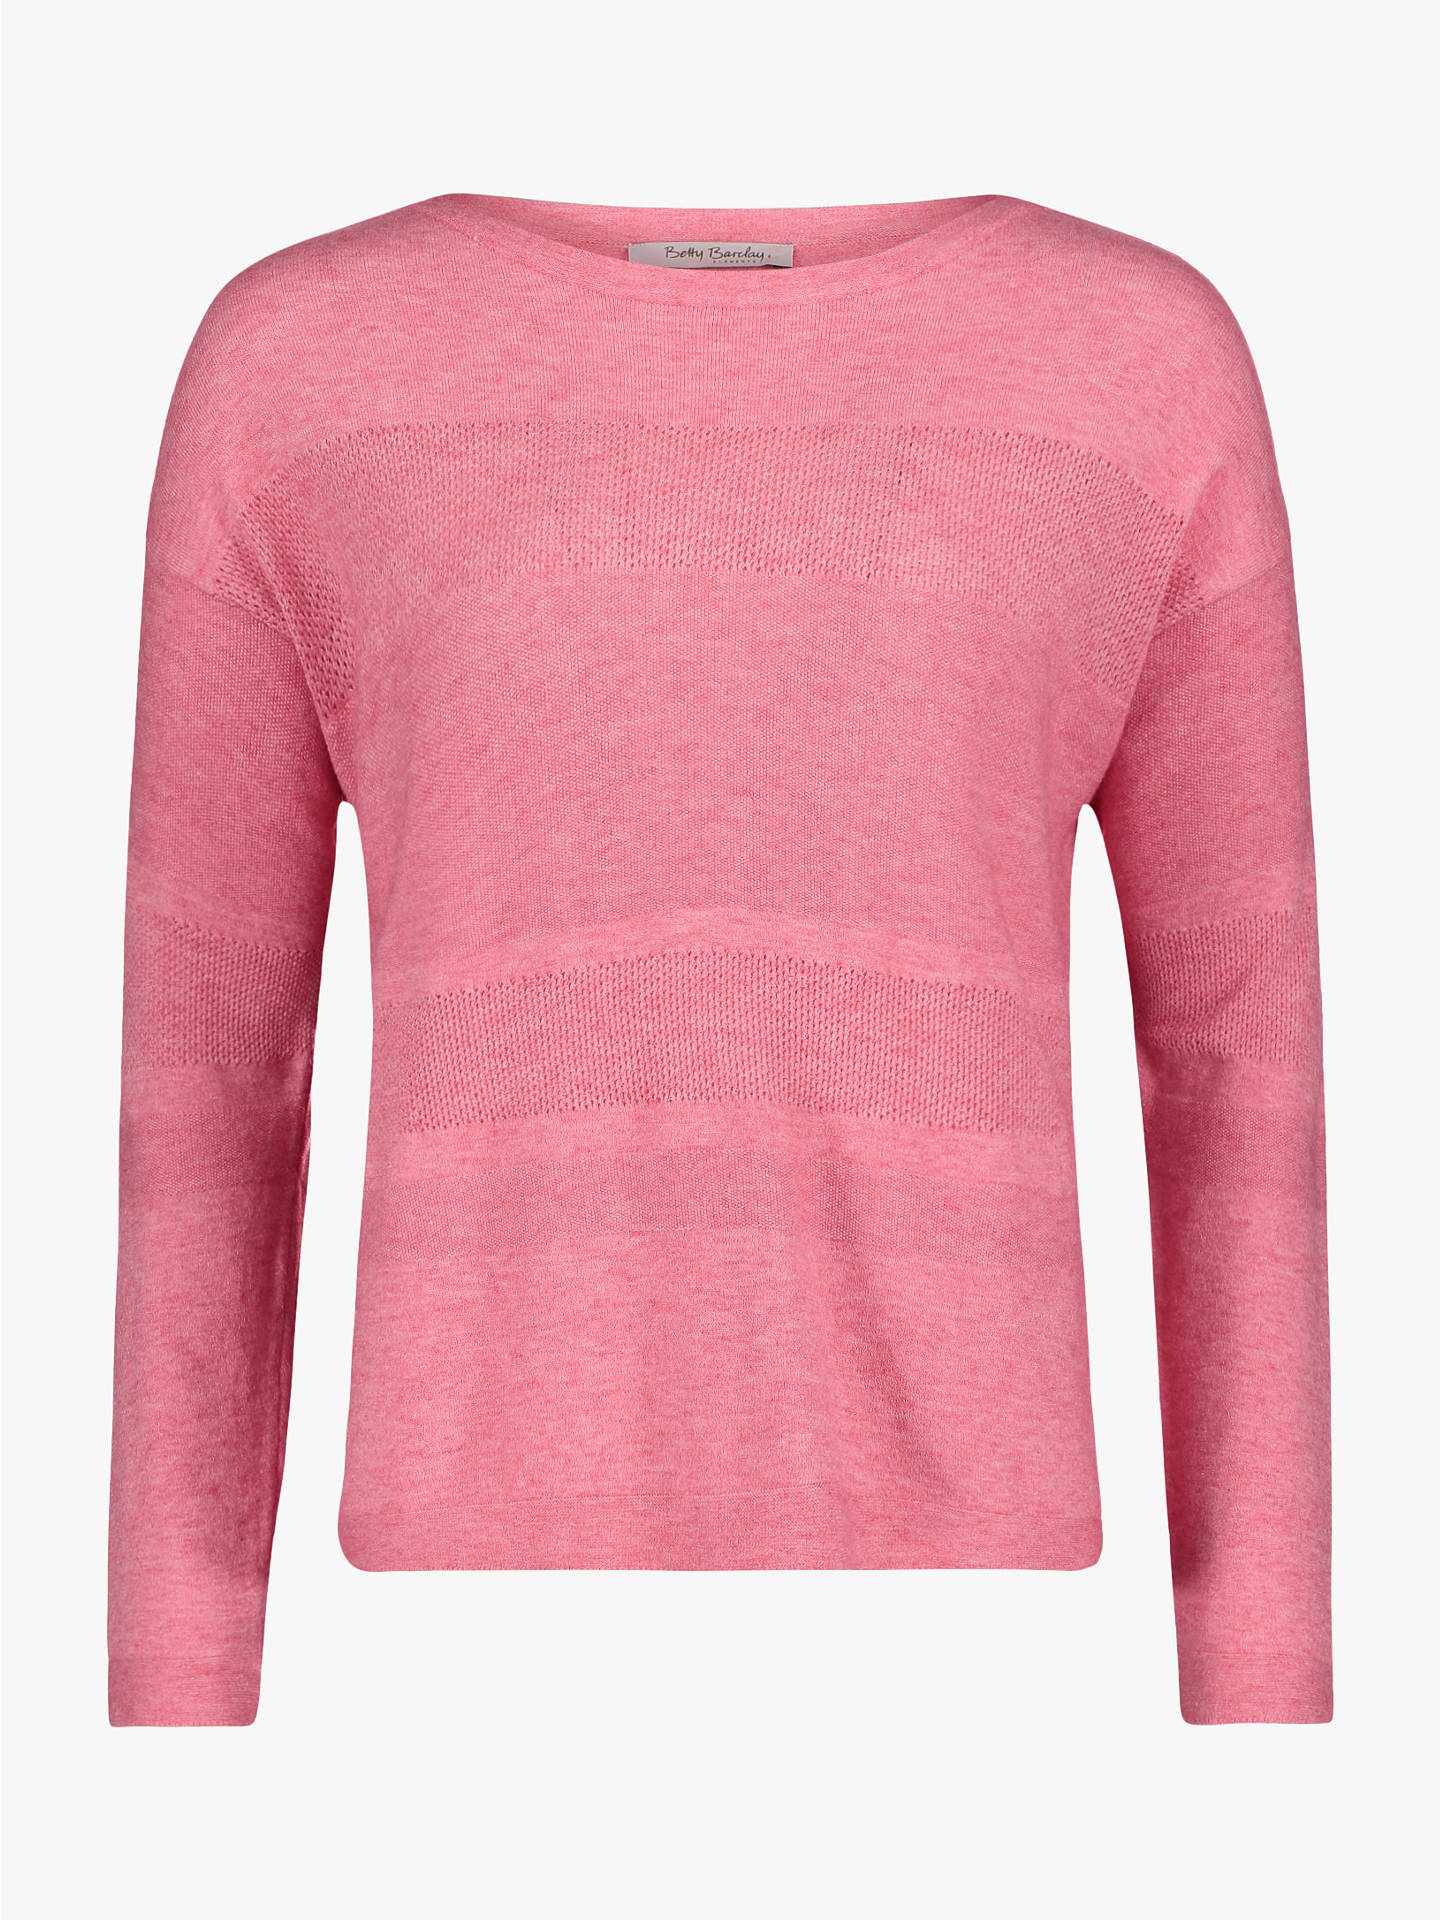 BuyBetty Barclay Crochet Panel Jumper, Bright Pink Melange, 14 Online at johnlewis.com